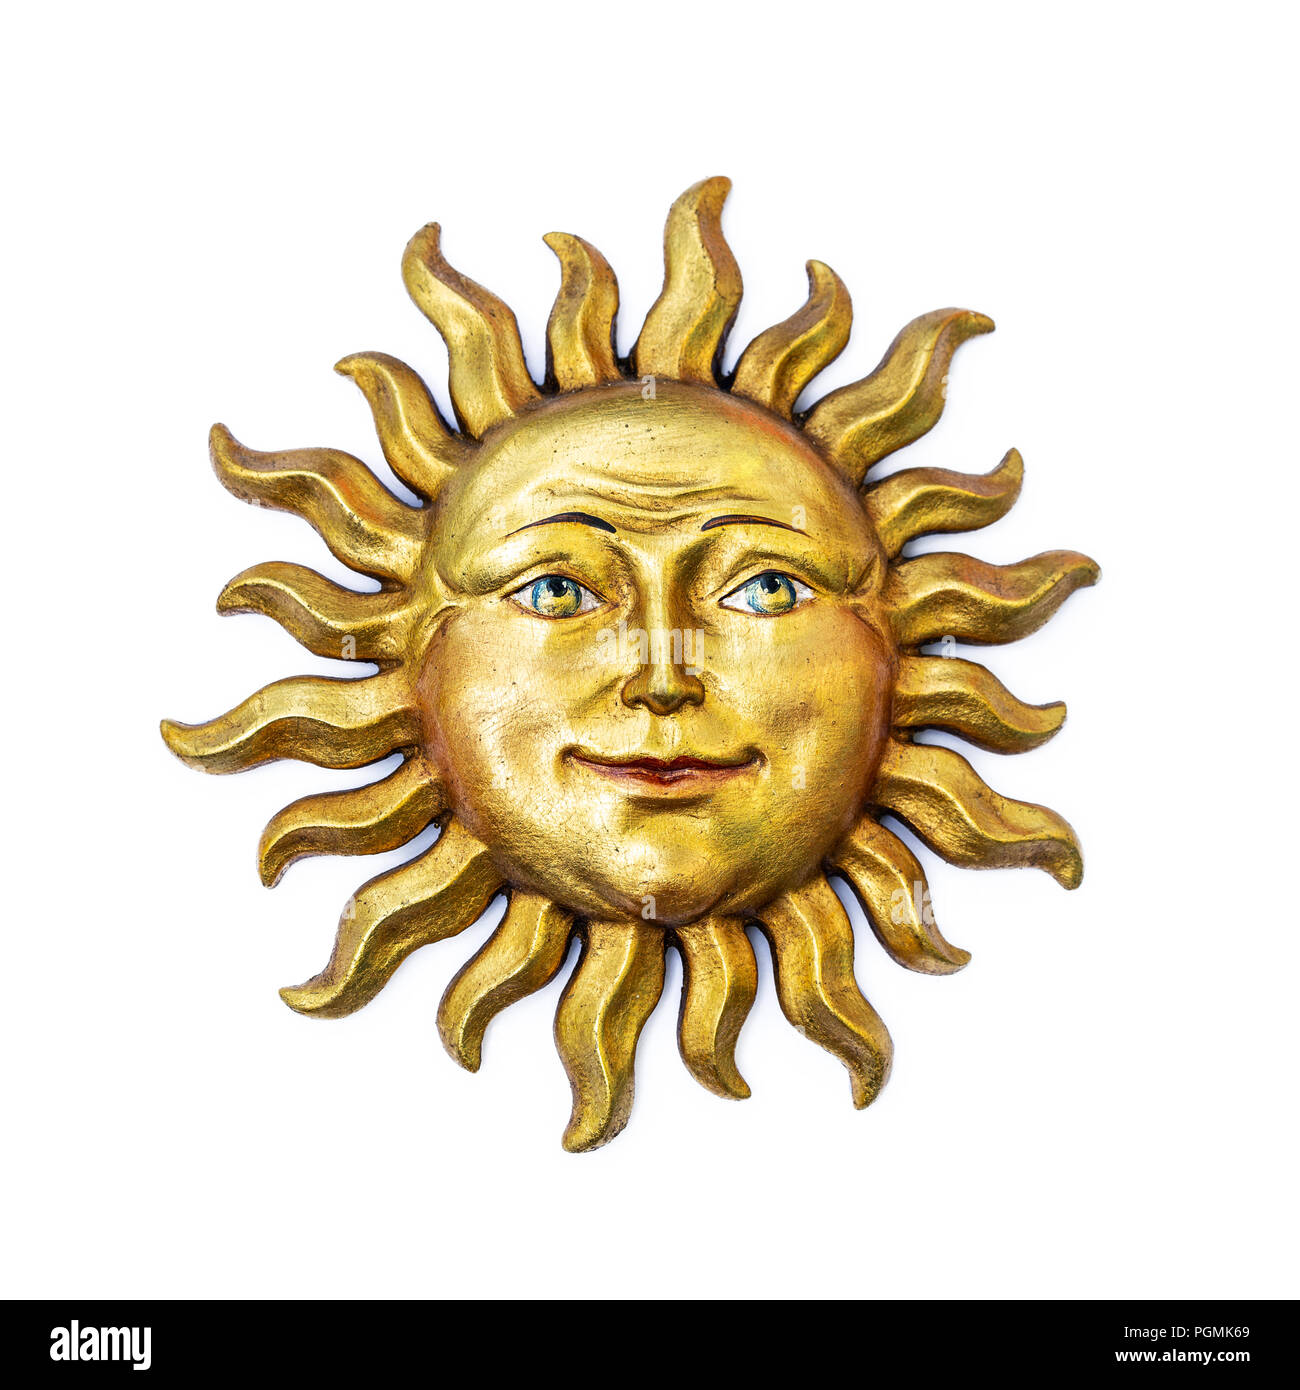 Sun Face Wall Decor High Resolution Stock Photography And Images Alamy